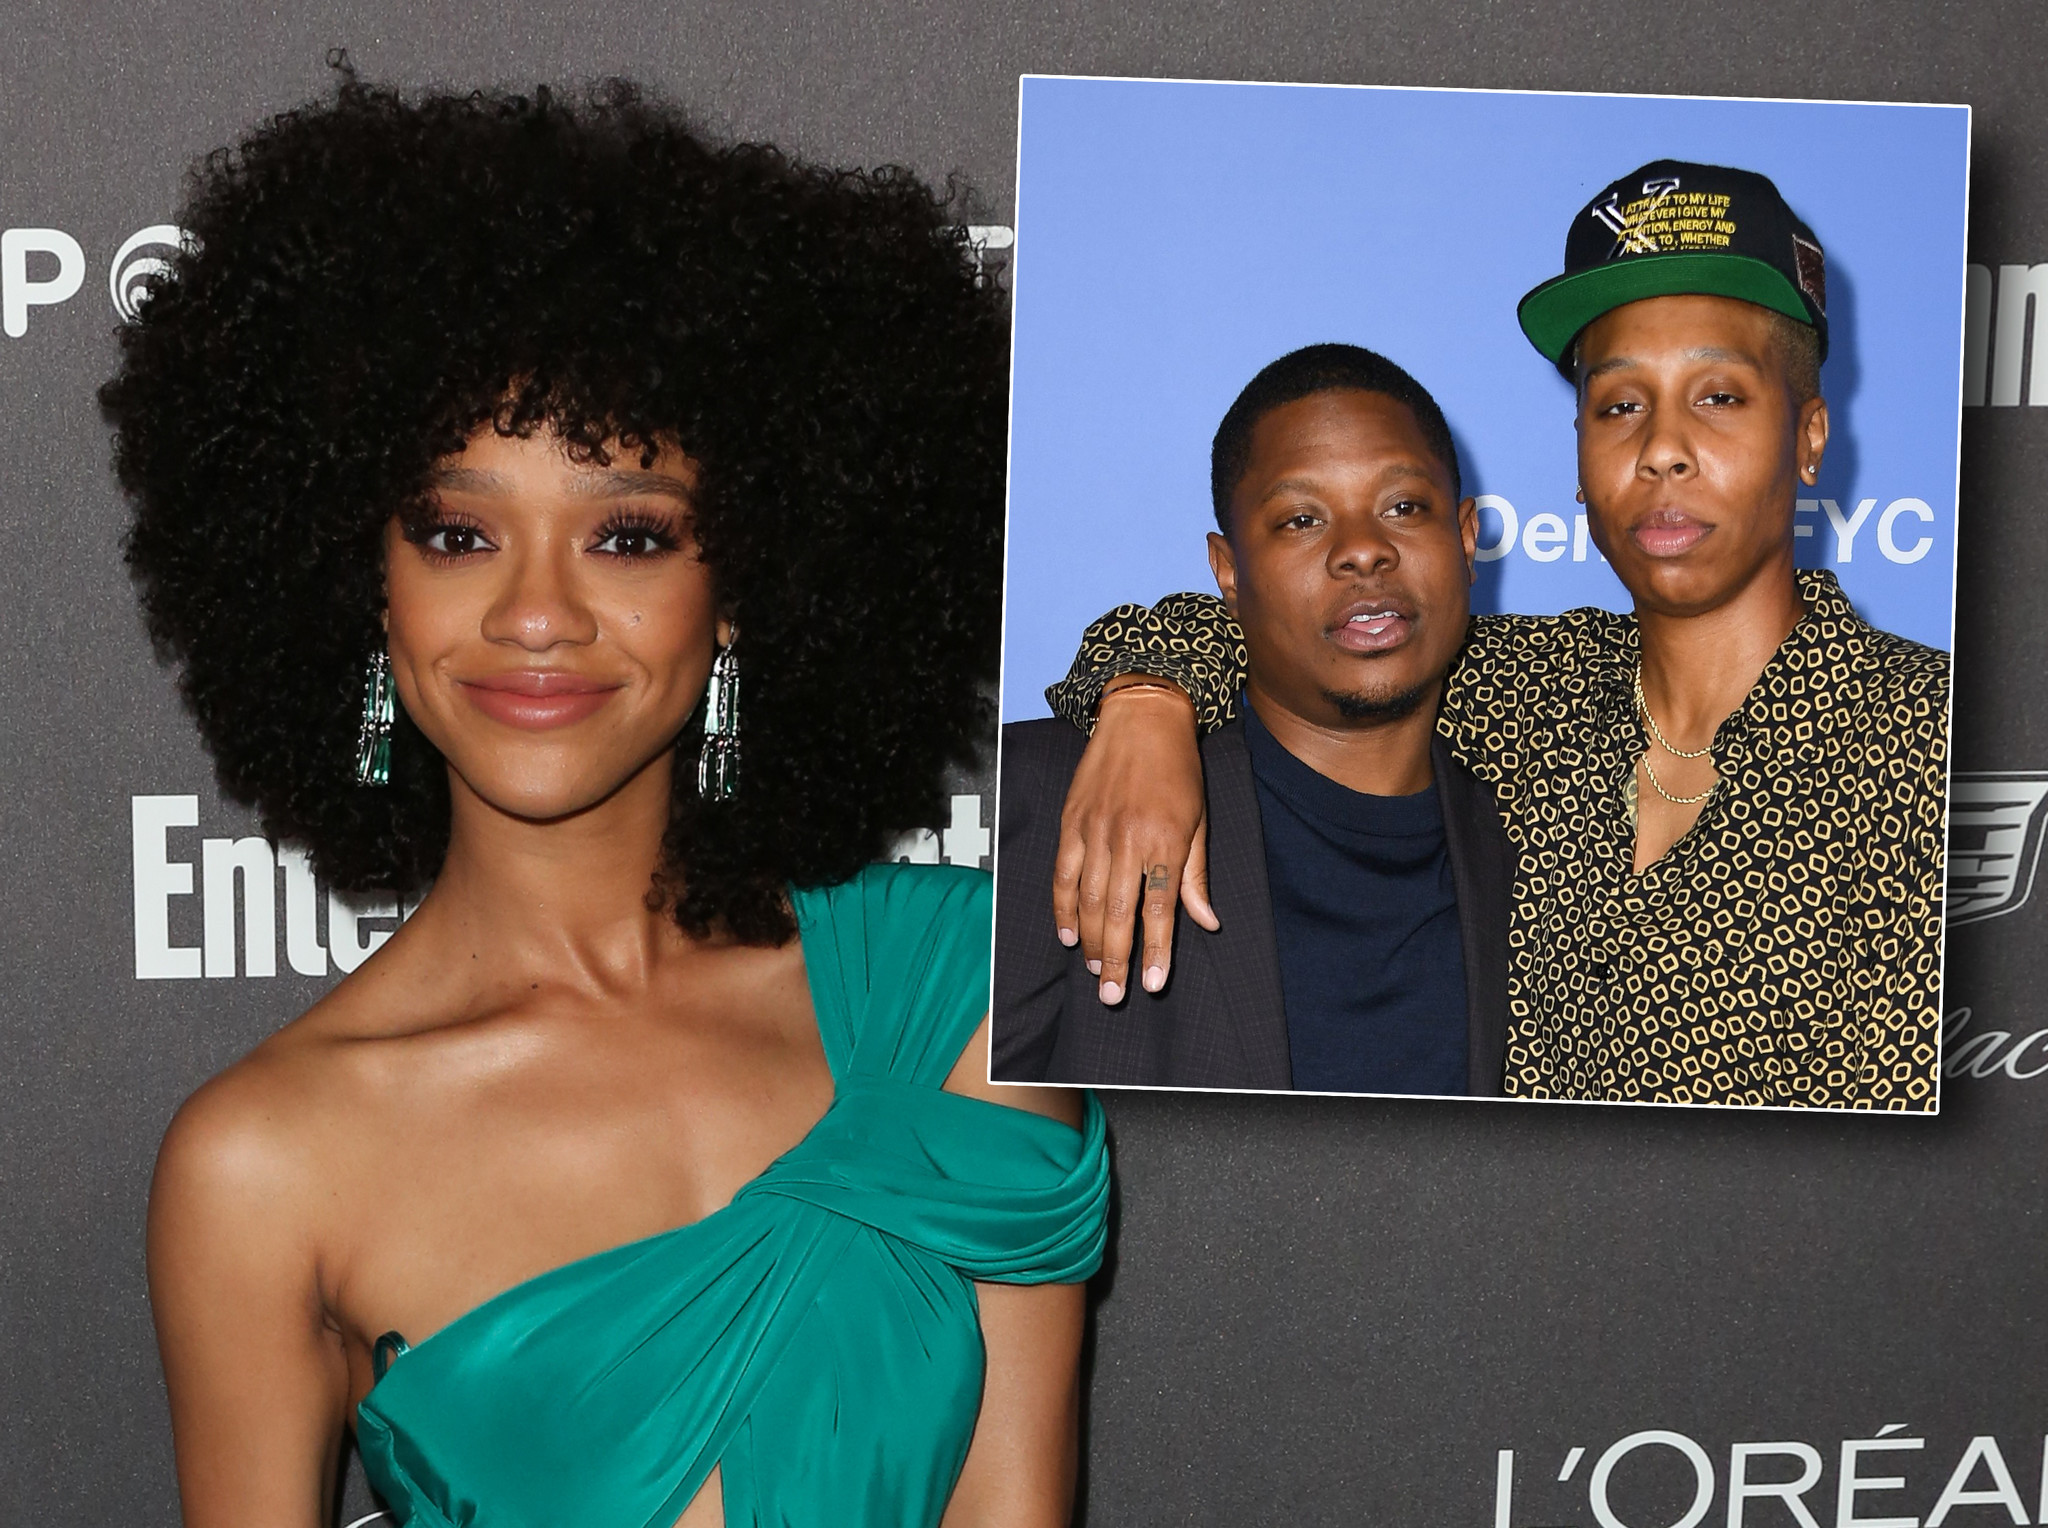 Tiffany Boone opens up about quitting 'The Chi' after making harassment allegations against co-star Jason Mitchell